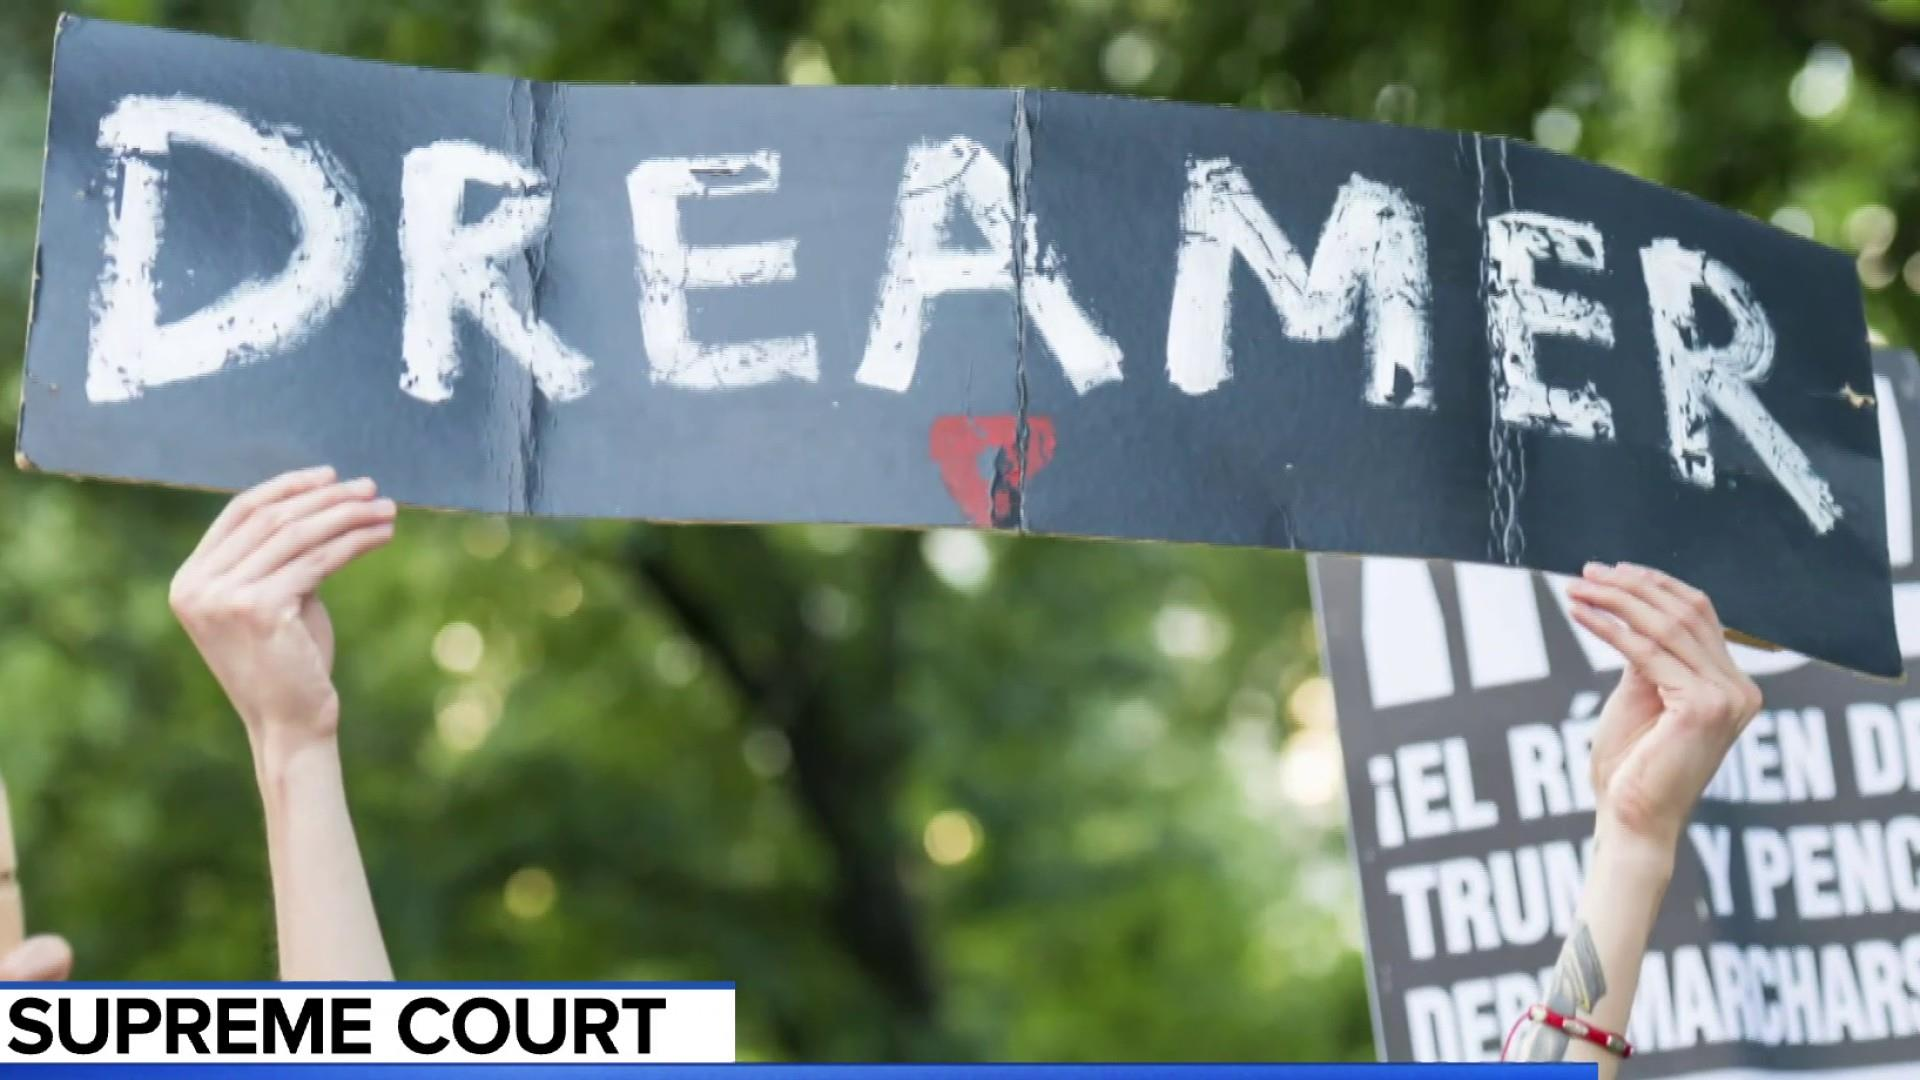 Trump's move to end dreamers program faces Supreme Court scrutiny